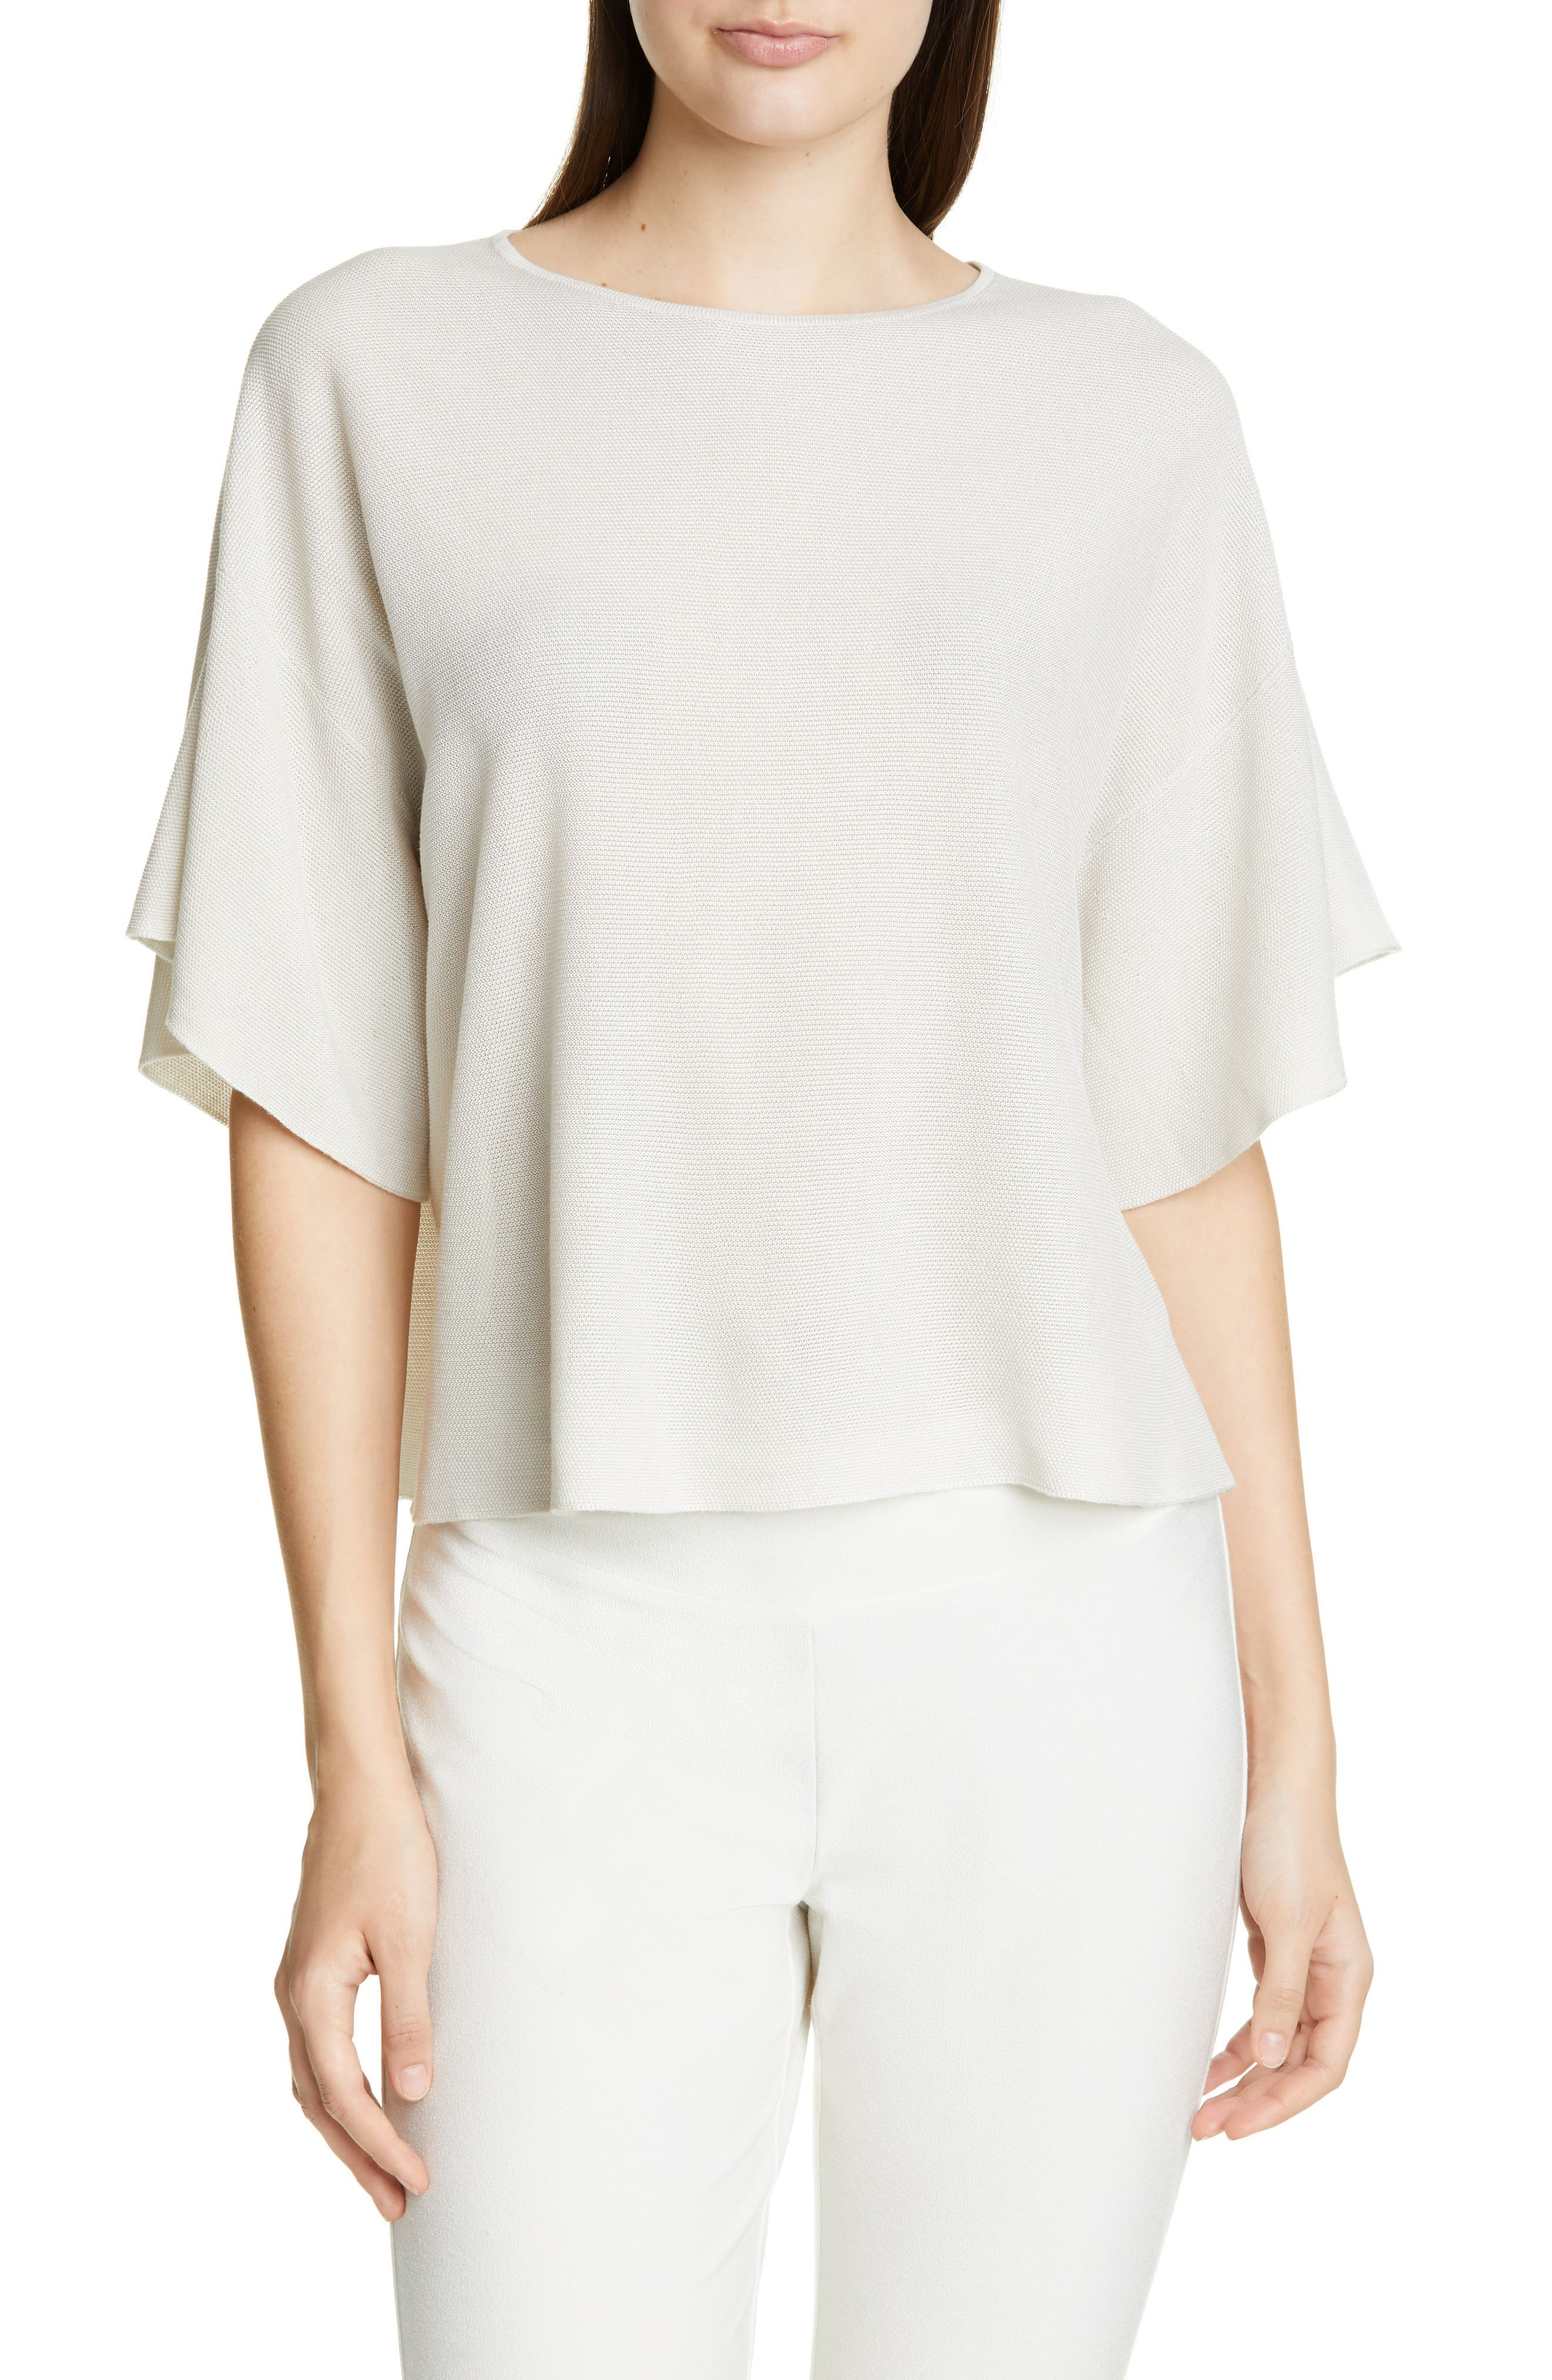 EILEEN FISHER, Elbow Sleeve Top, Main thumbnail 1, color, 100